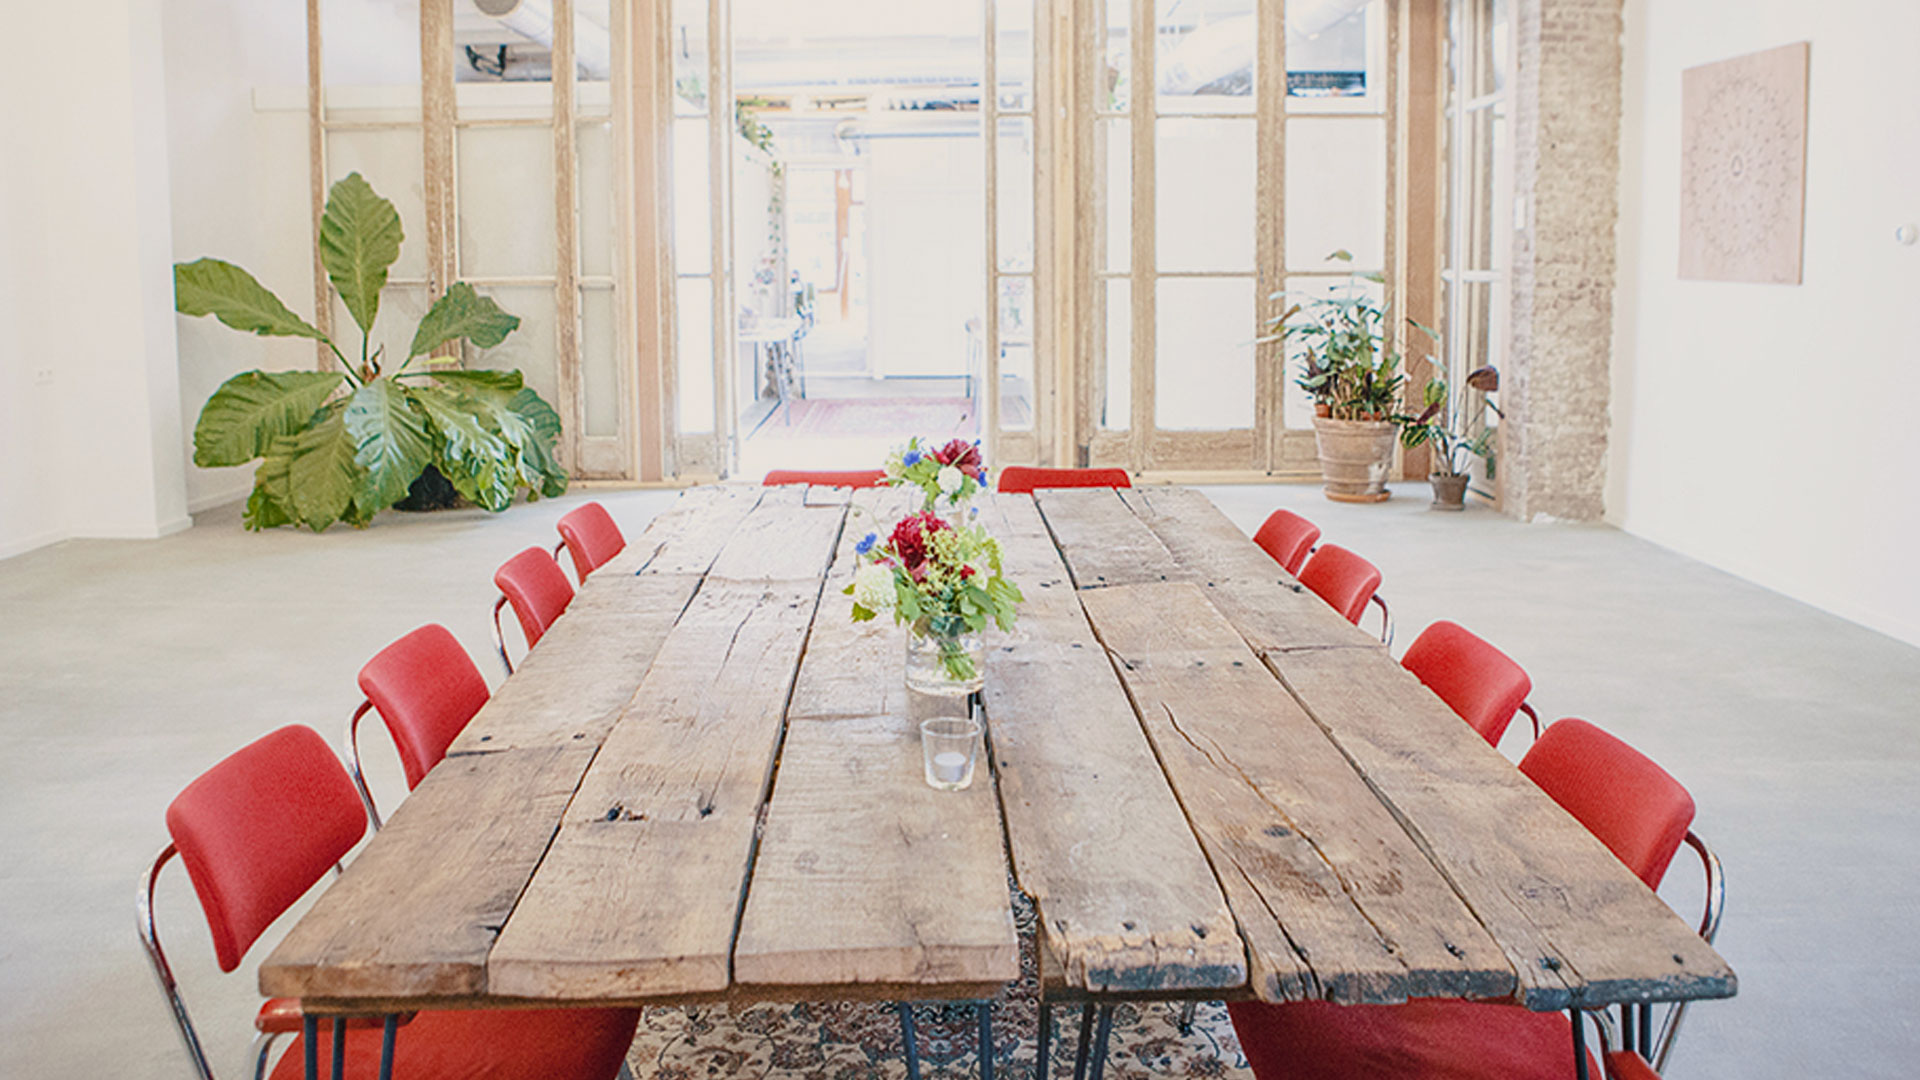 We made our own tables from 300 year old oak floor boards from the famous Wester Tower. -